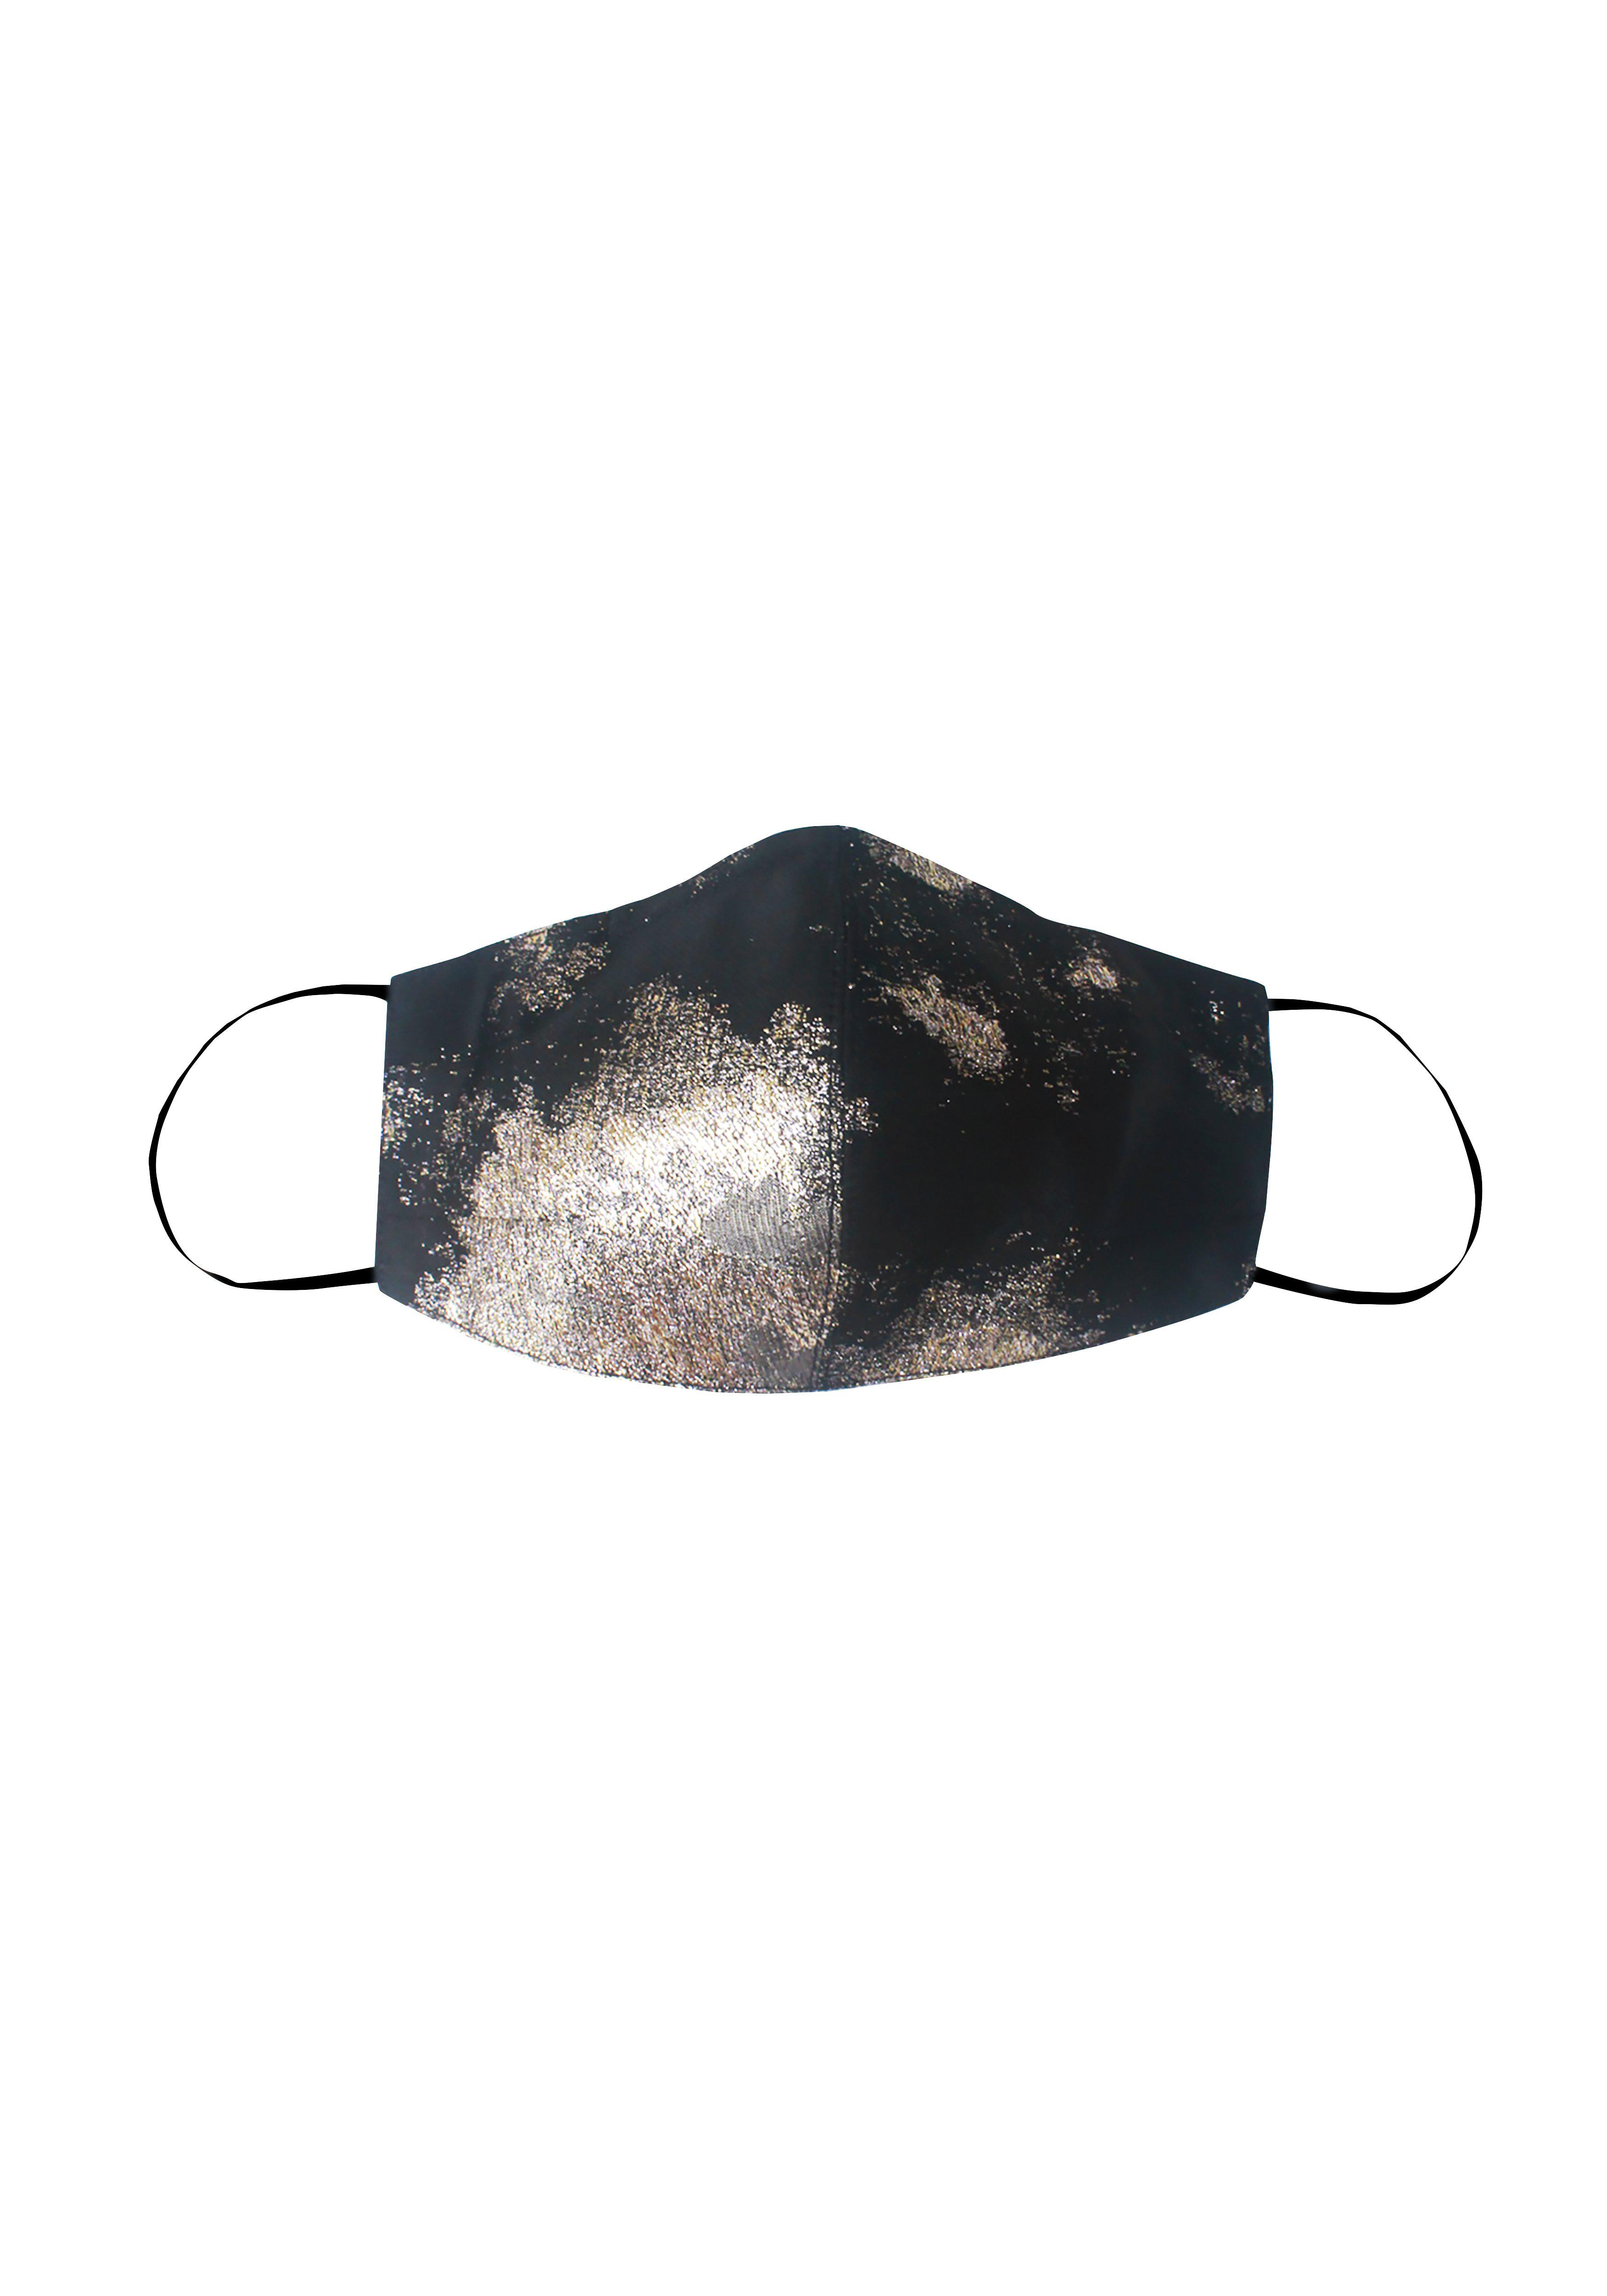 Black and Silver Mask with Silk Lining